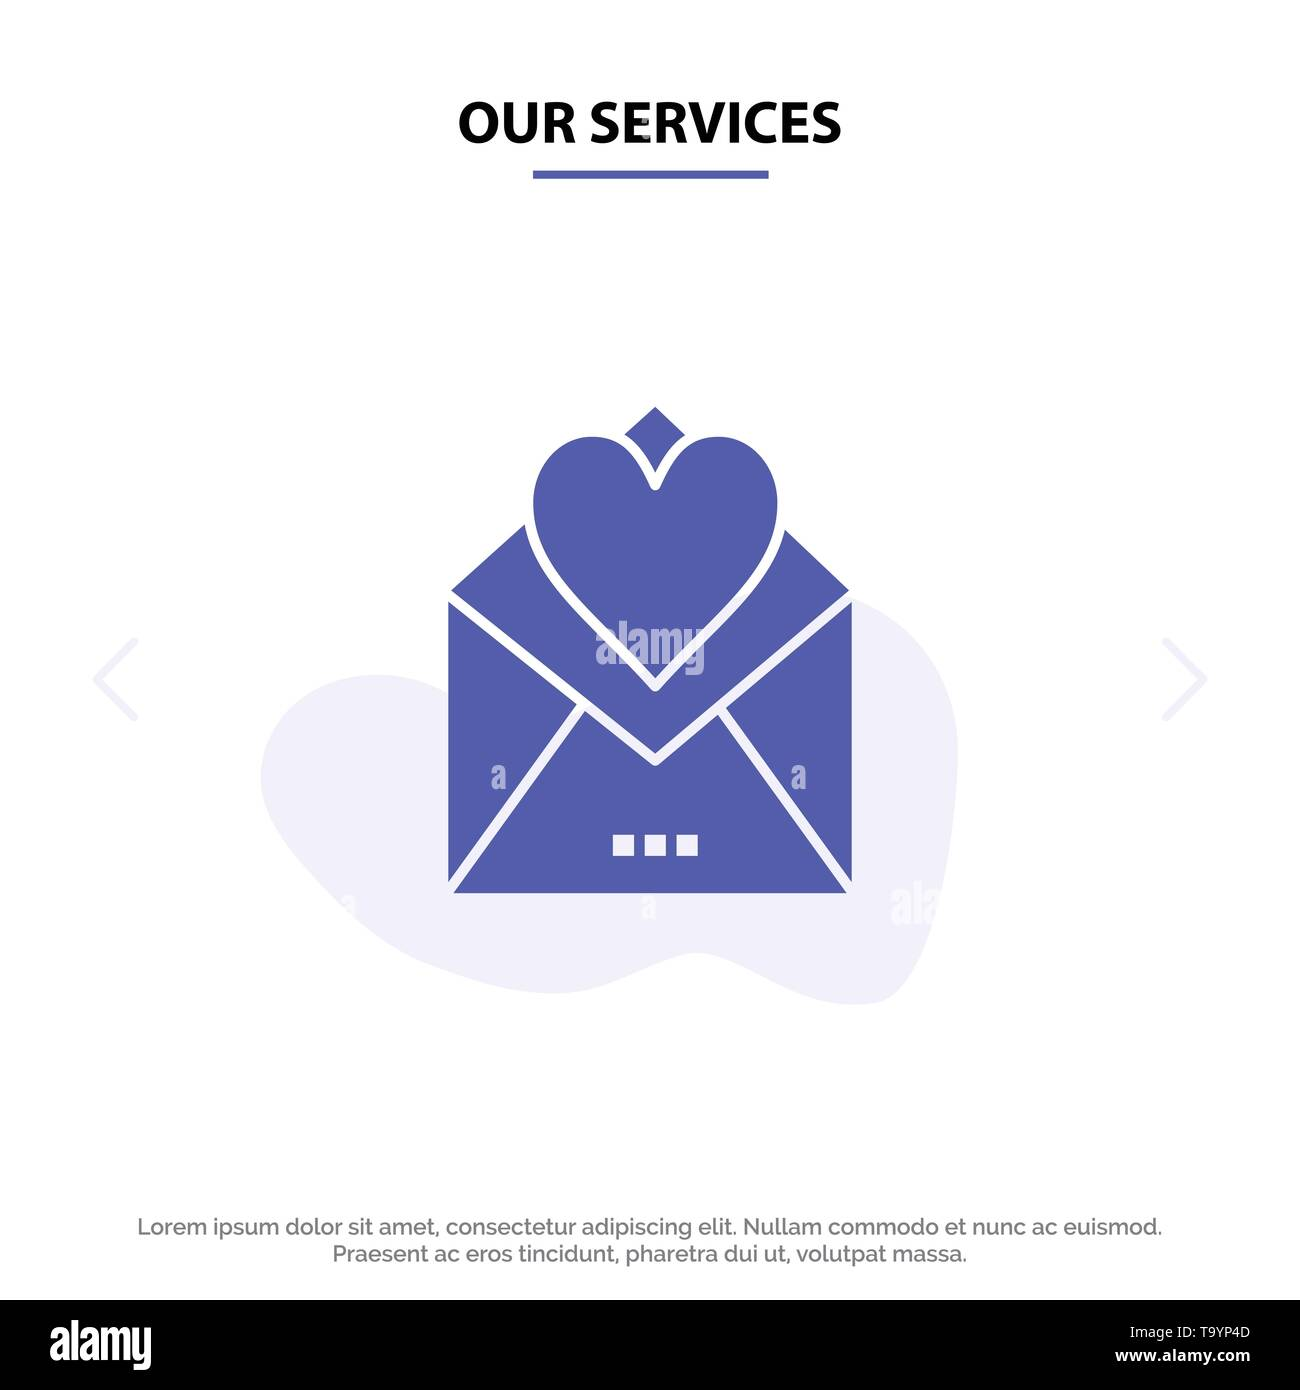 Our Services Letter, Mail, Card, Love Letter, Love Solid Glyph Icon Web card Template - Stock Image